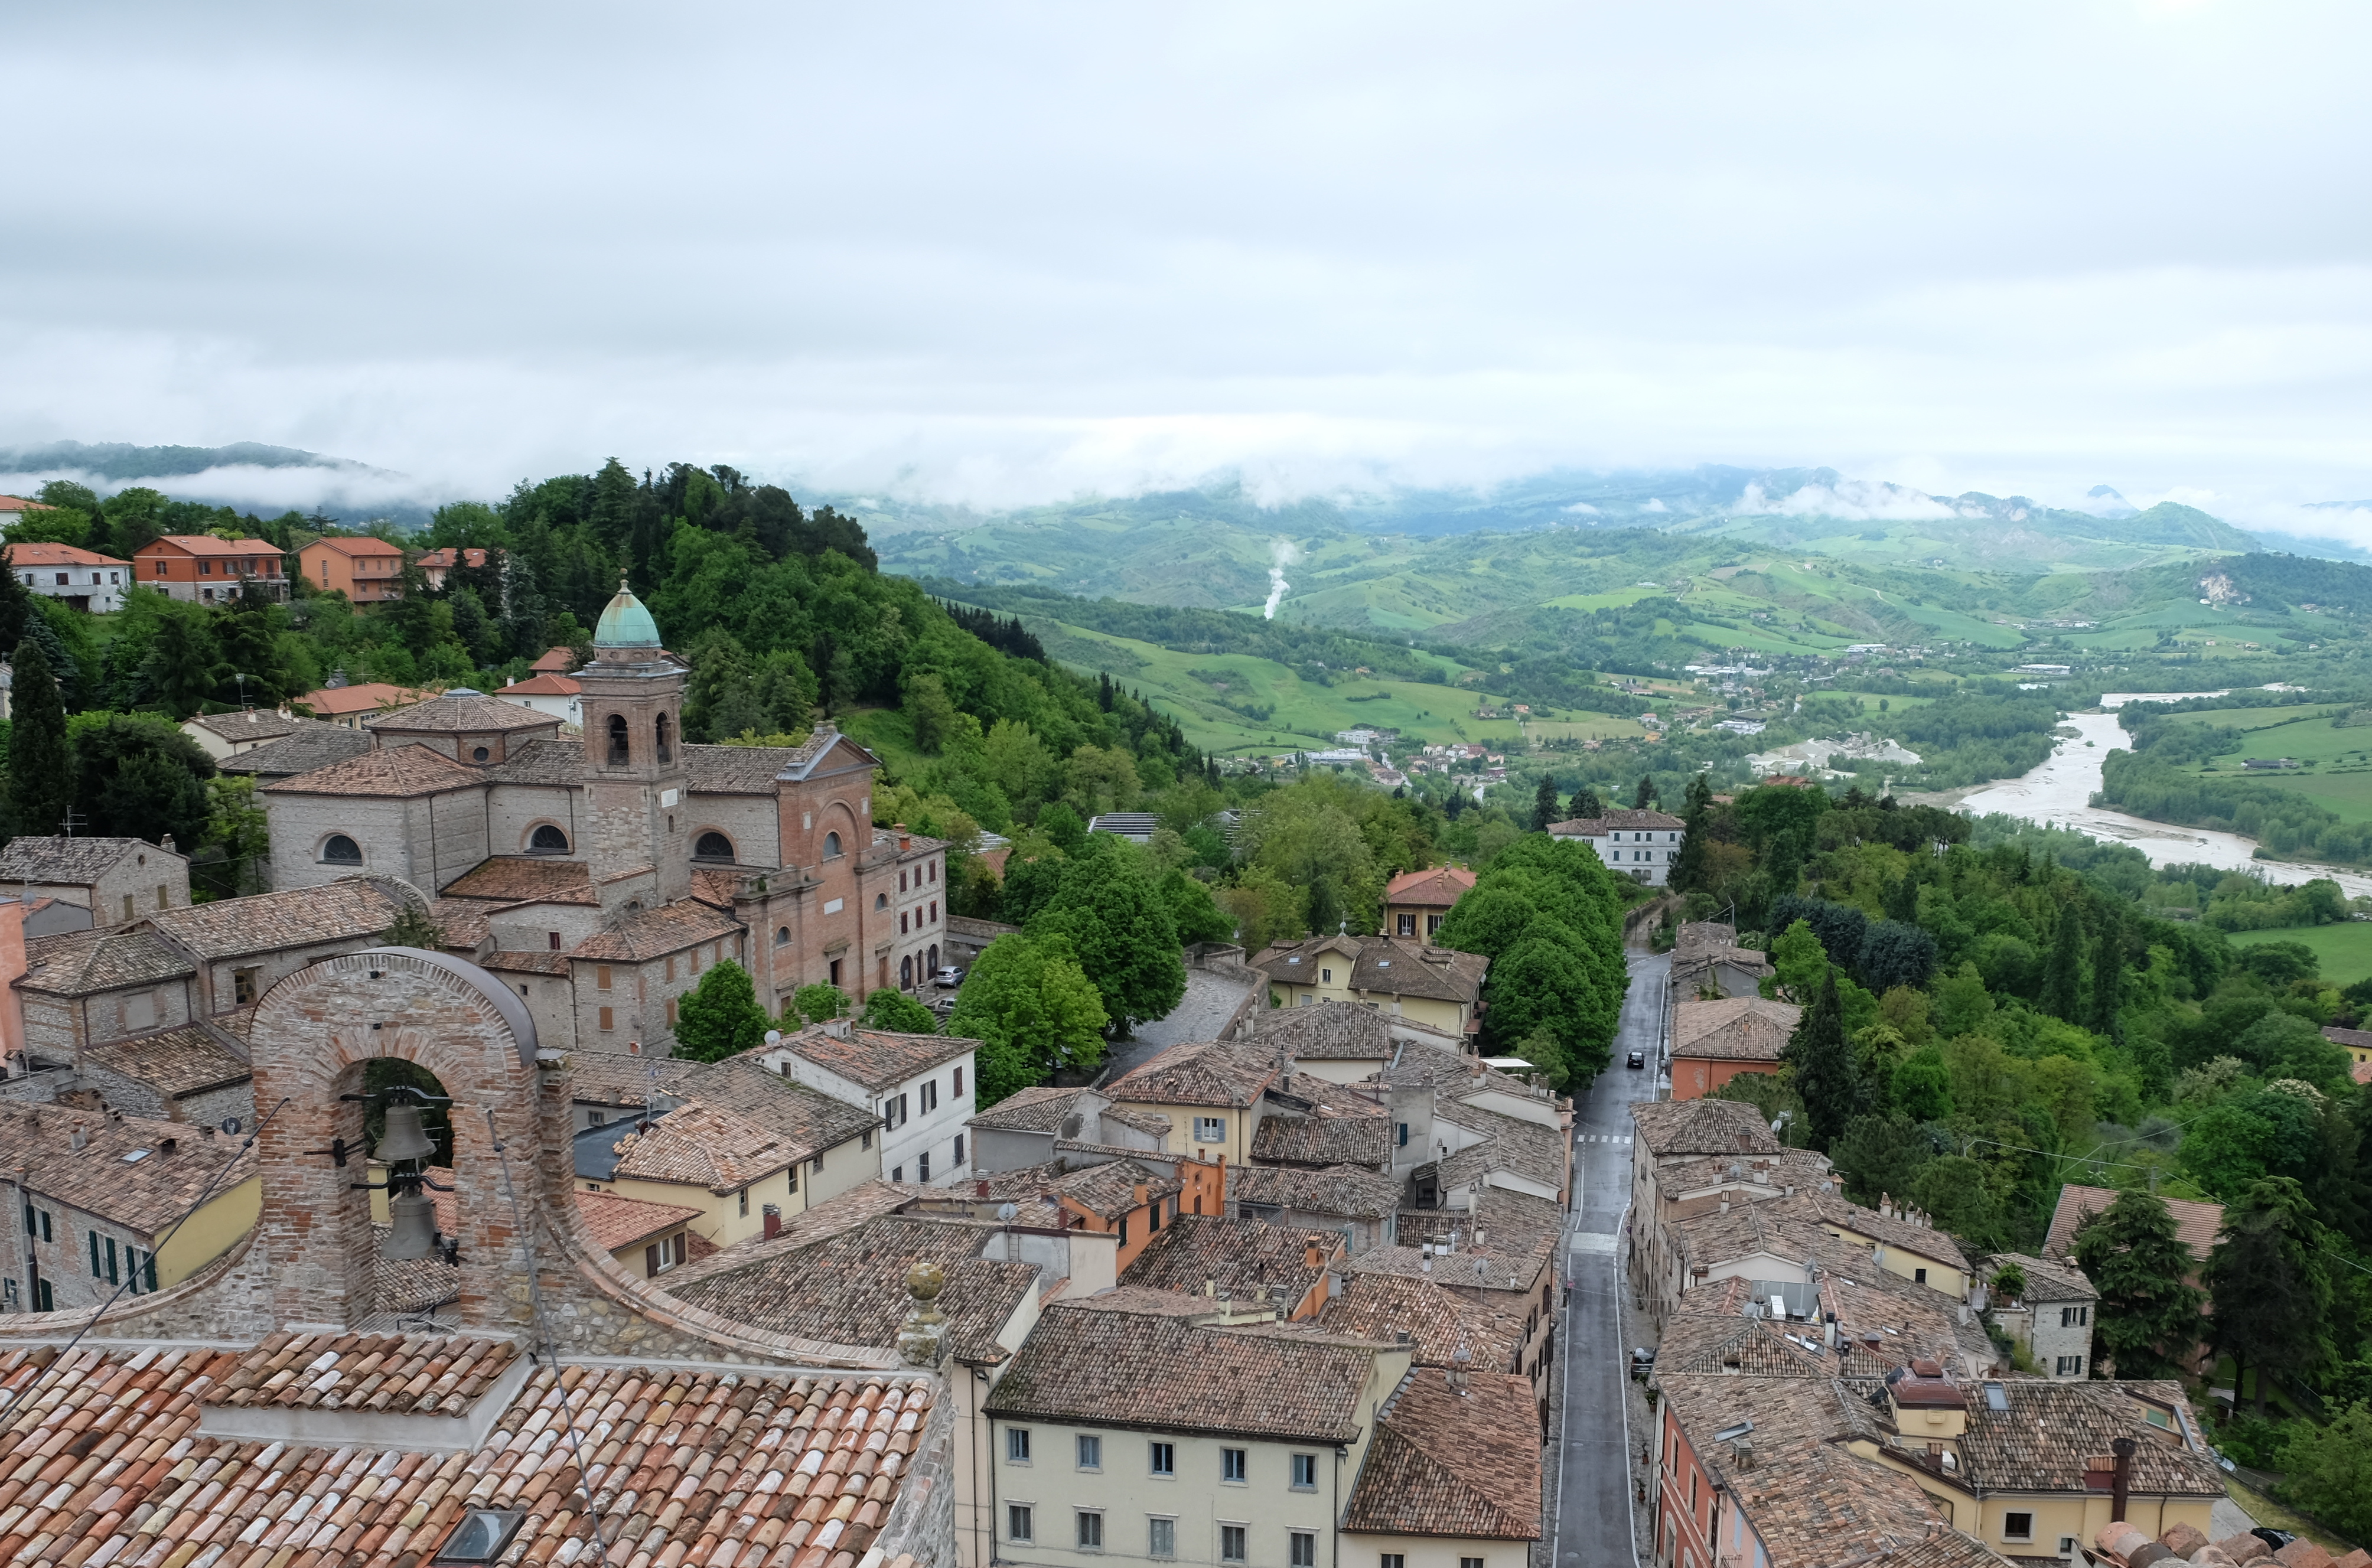 The hilltop village of Verucchio is a lovely spot in Emilia-Romagna. JIM BYERS PHOTO